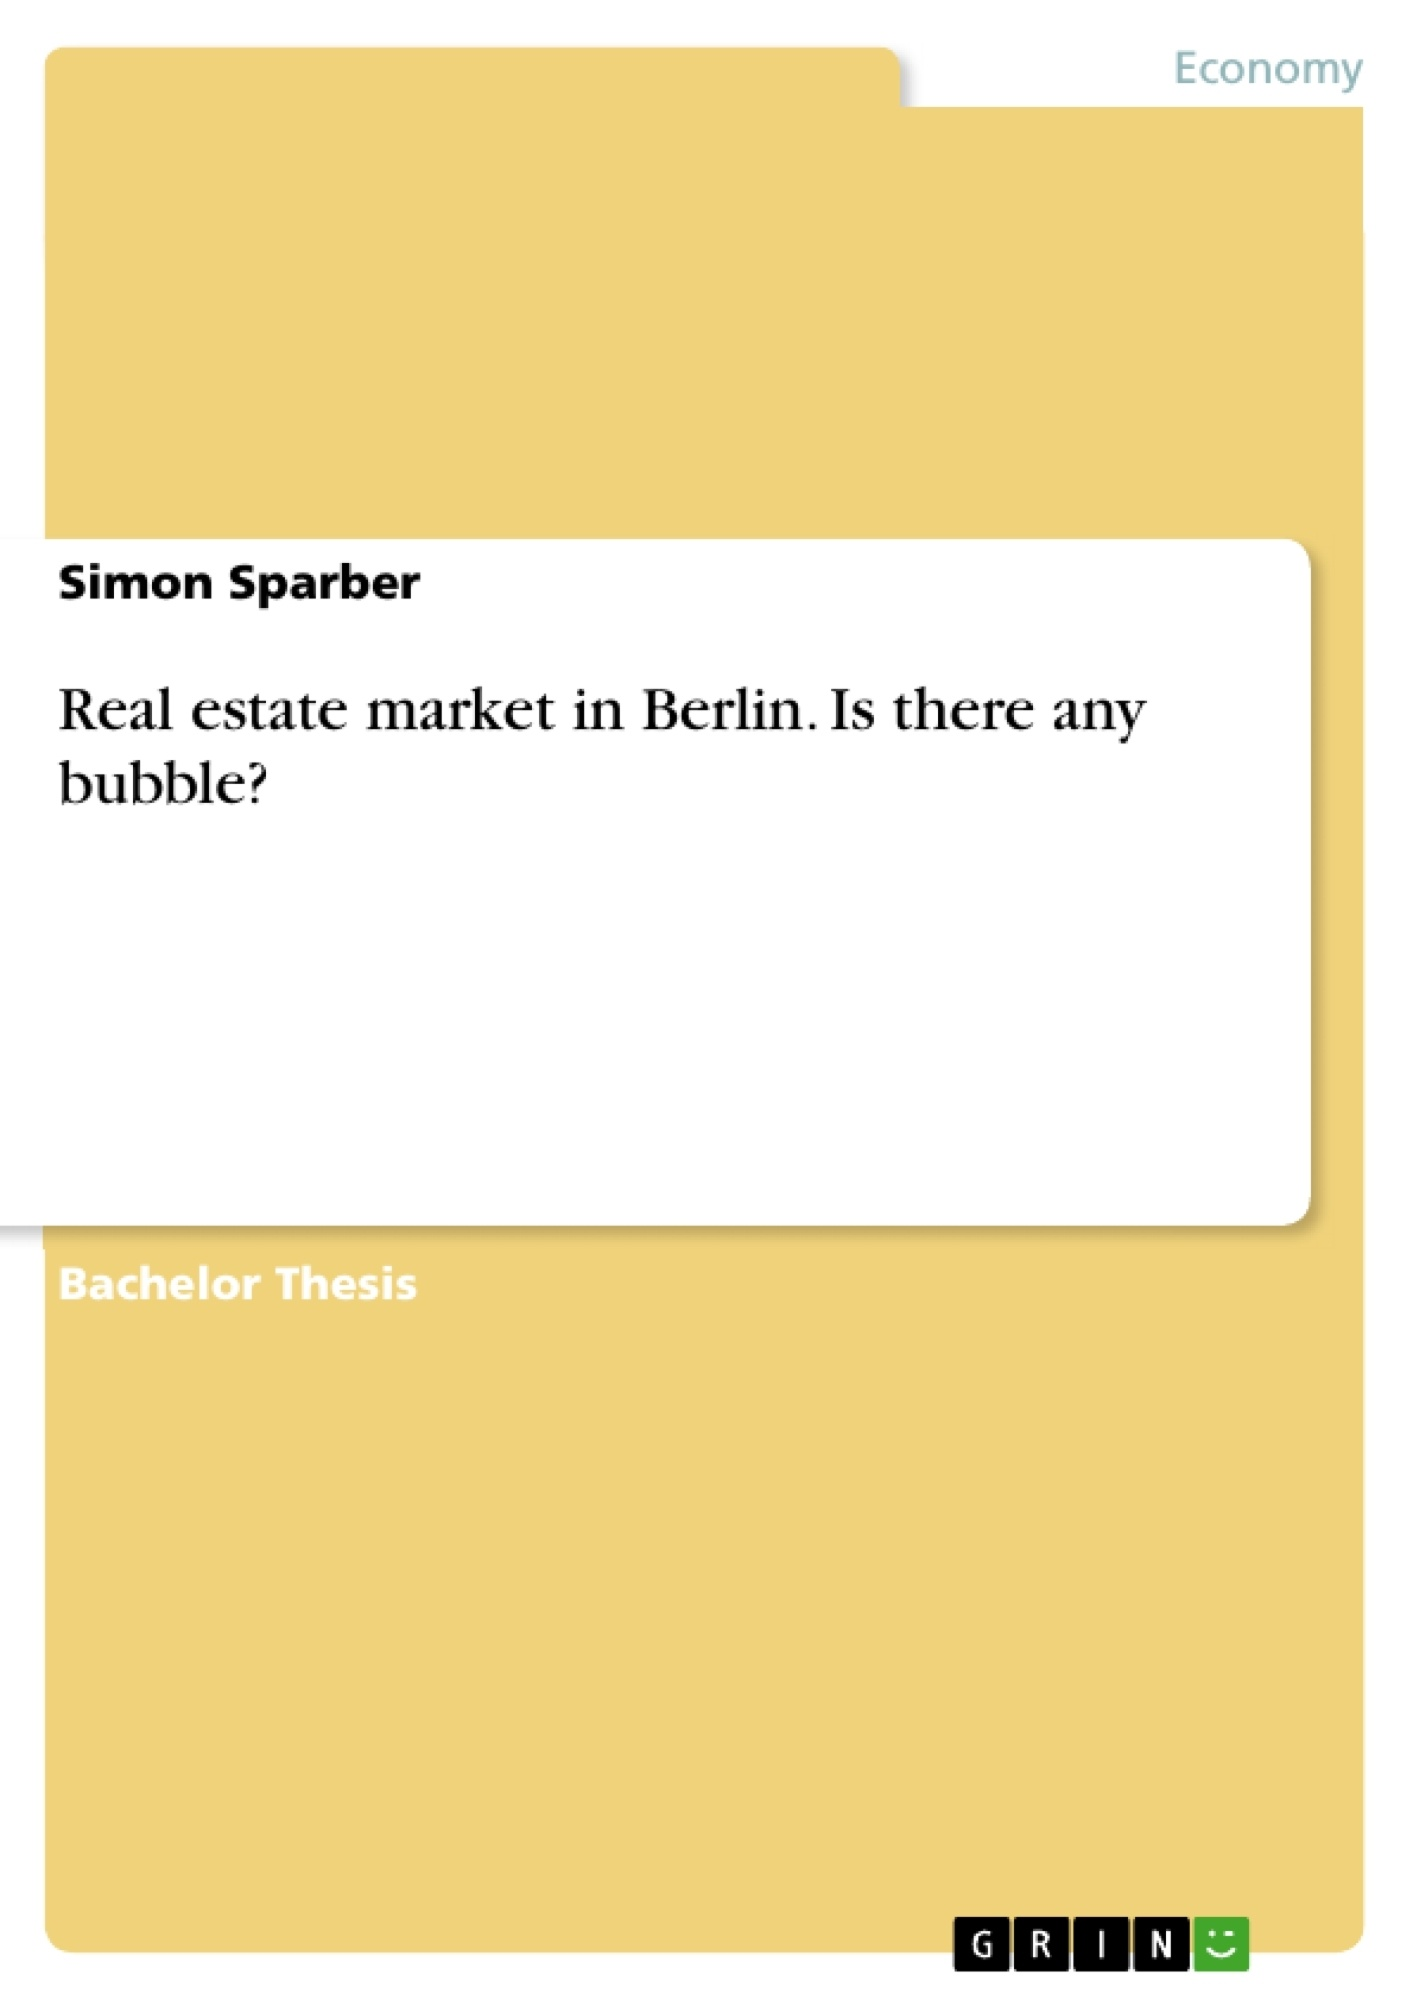 Title: Real estate market in Berlin. Is there any bubble?